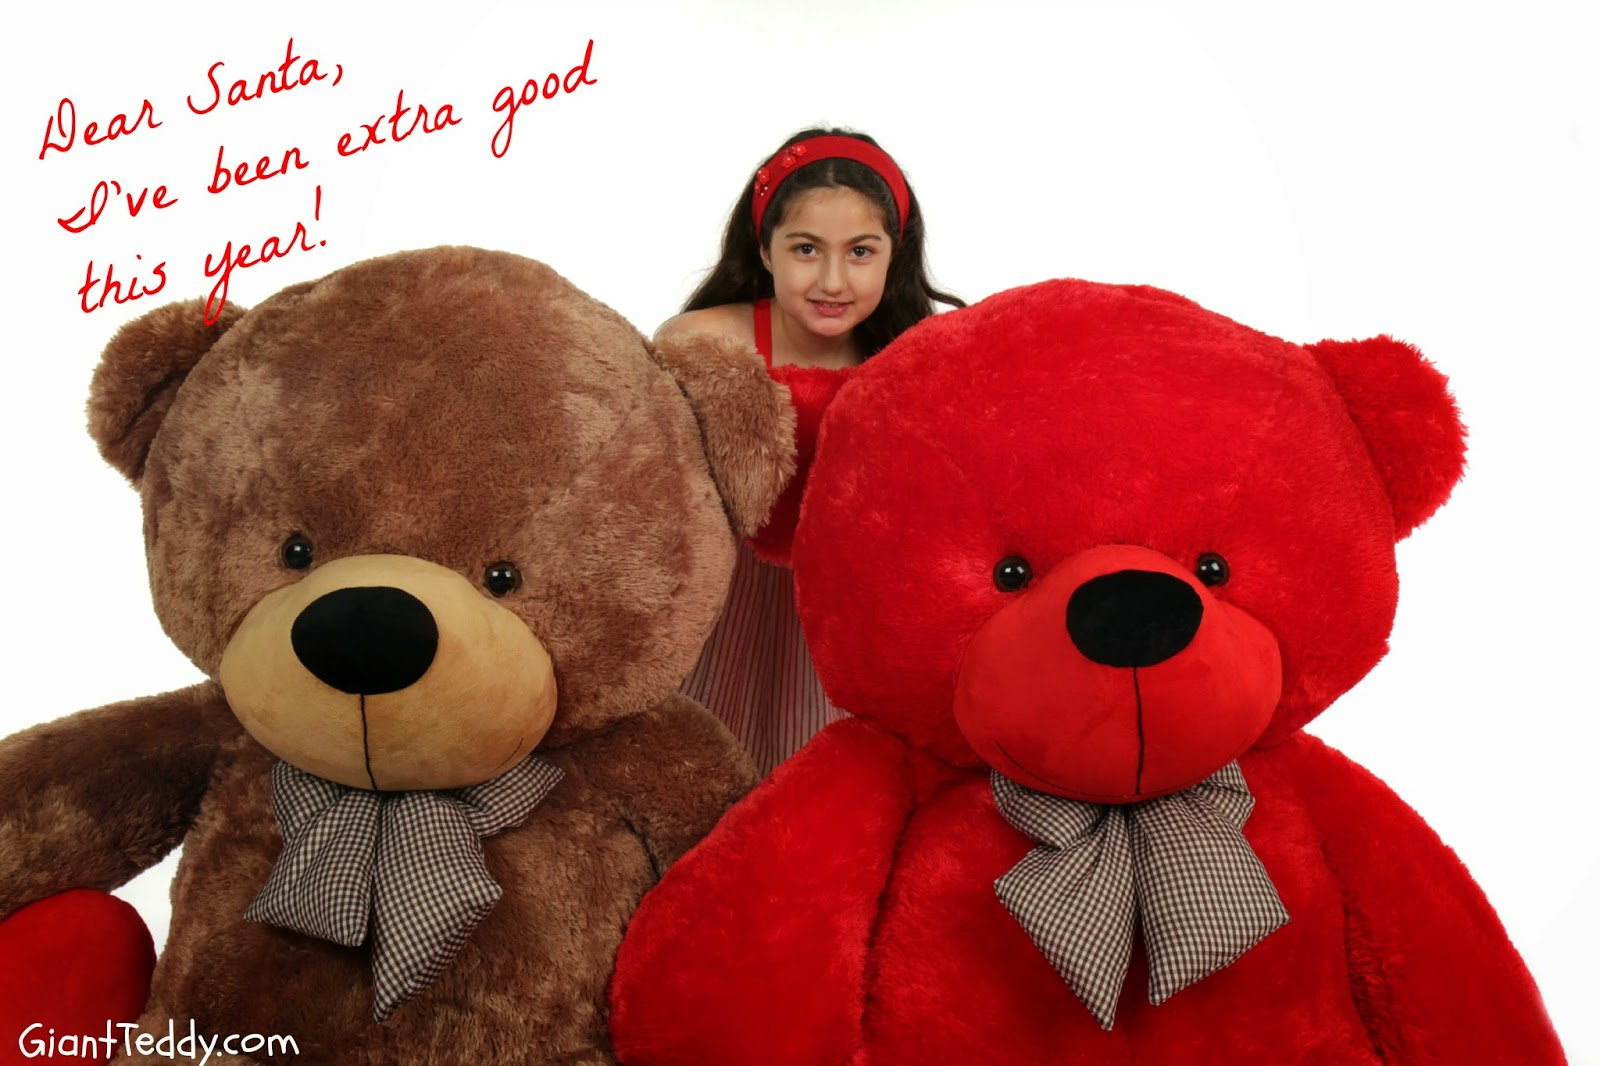 welcome to the giant teddy blog